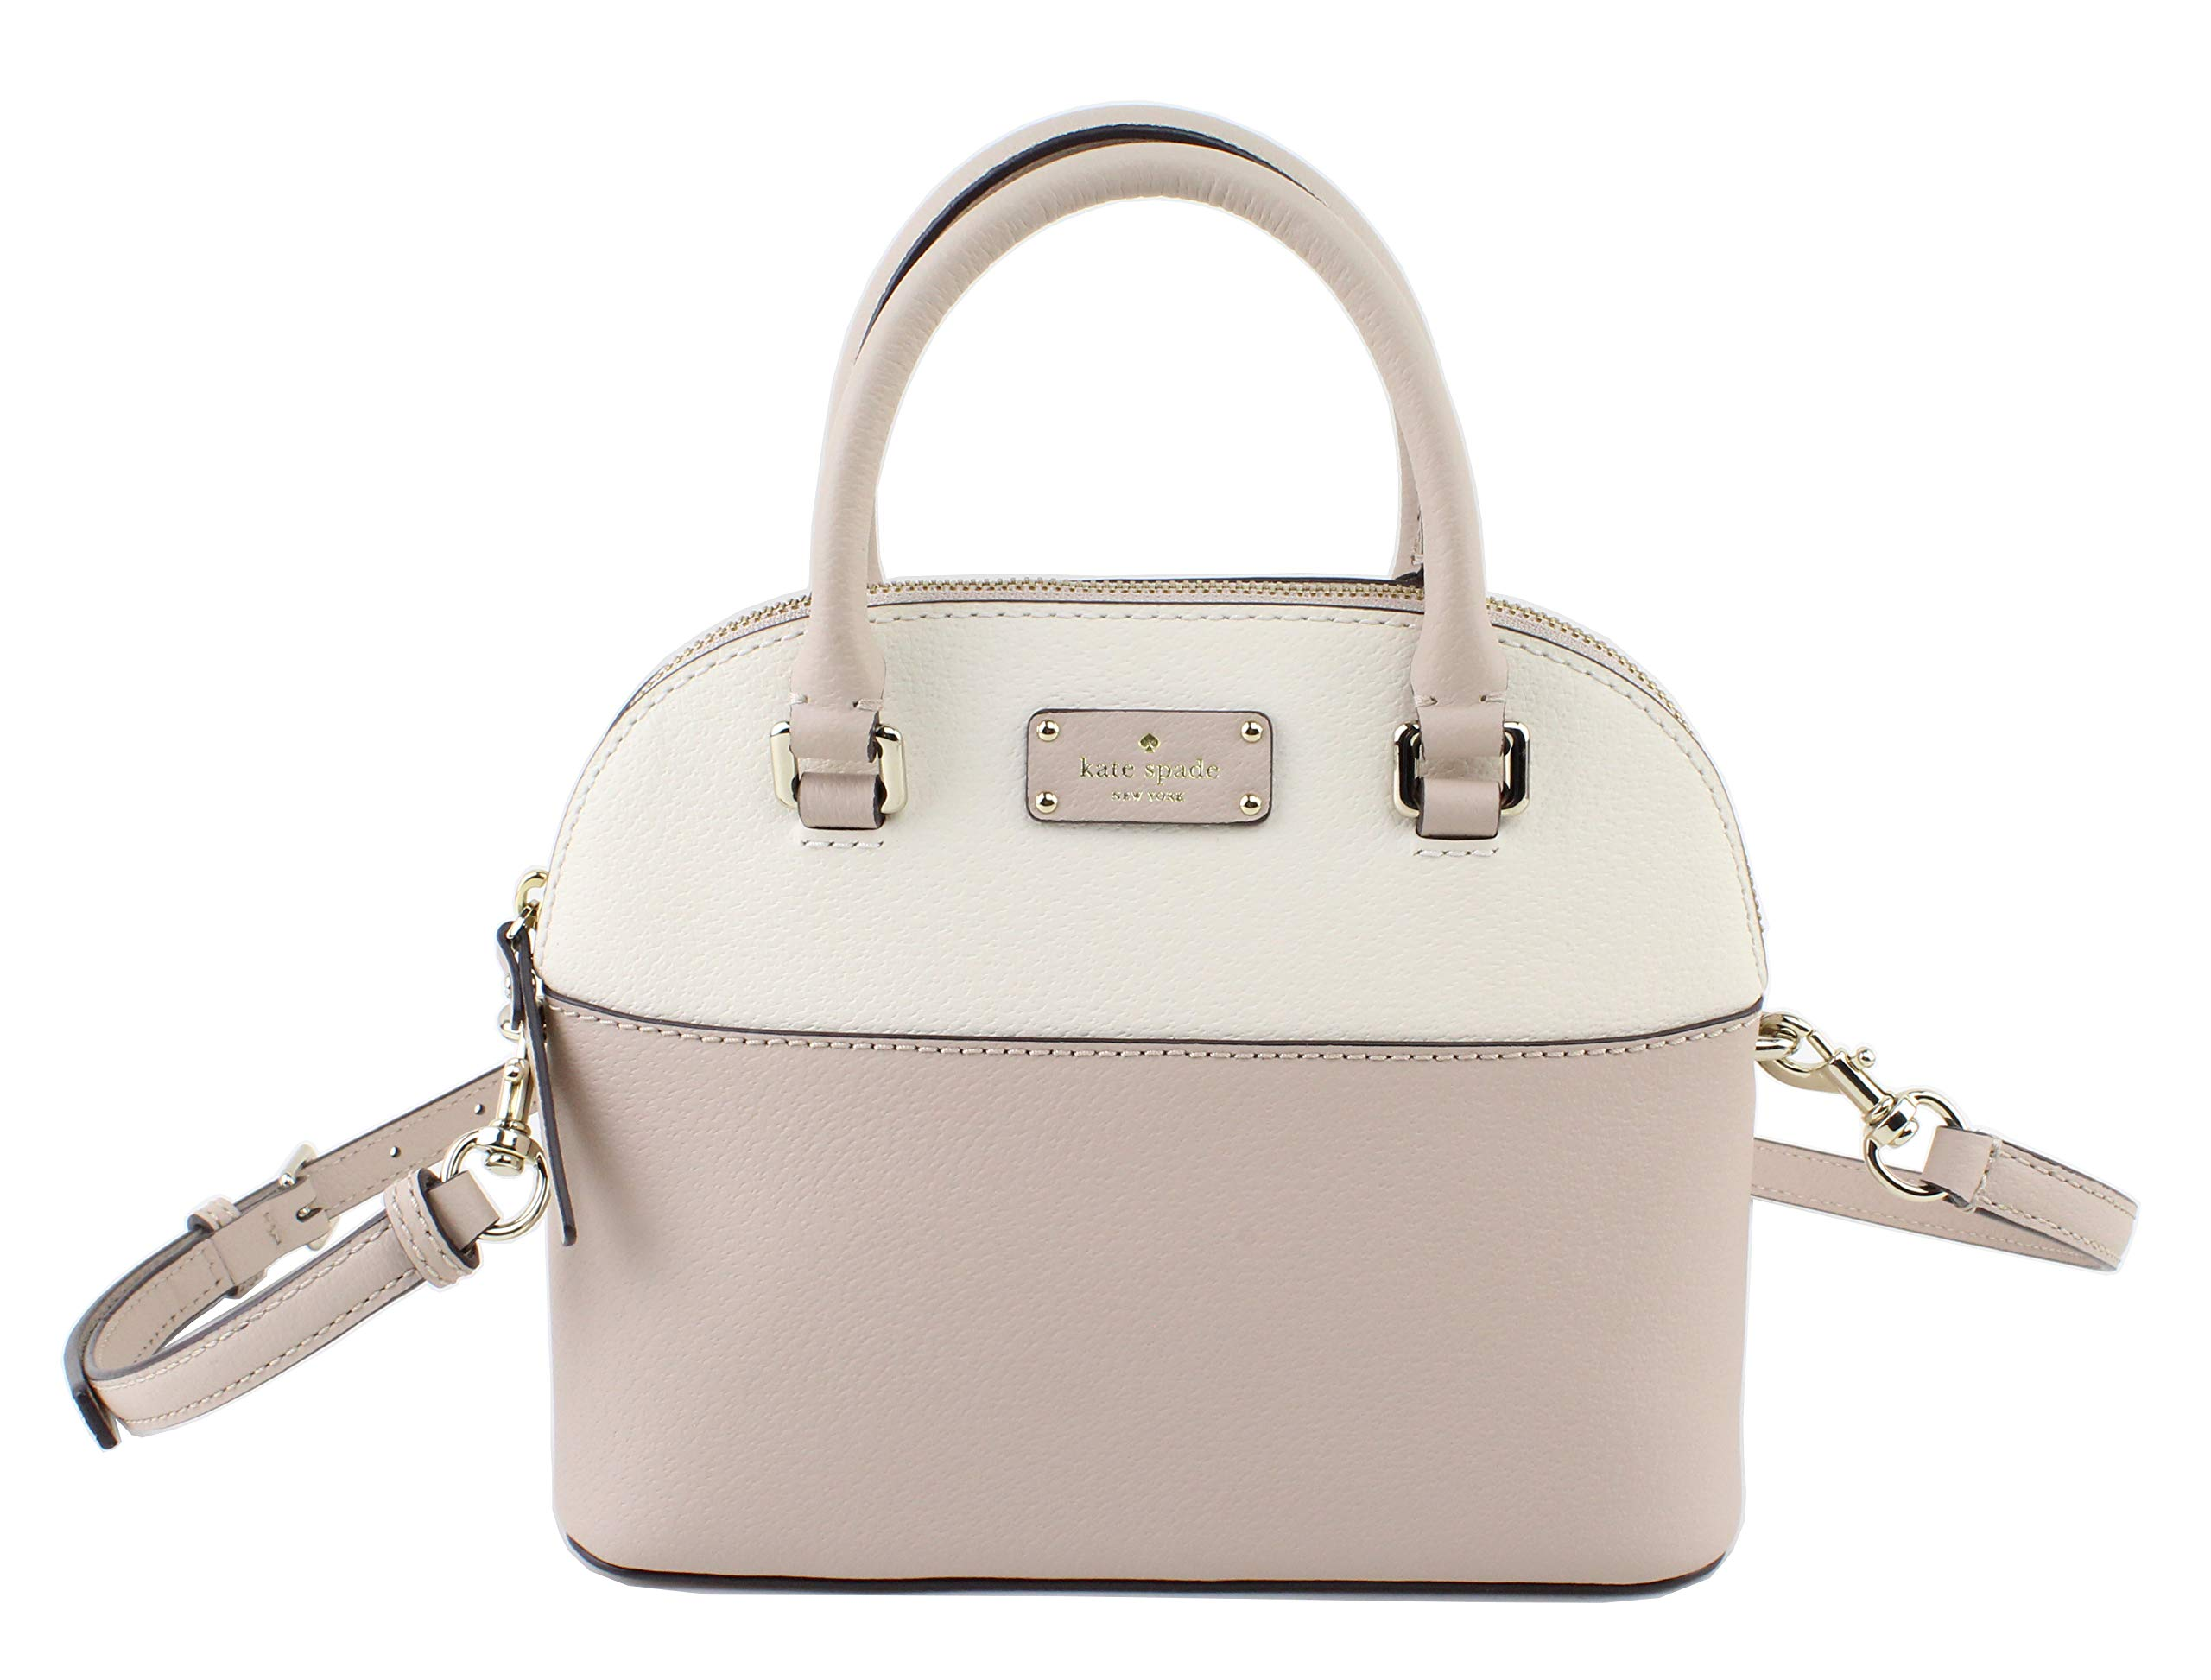 Kate Spade Grove Street Mini Carli Leather Crossbody Bag Purse Satchel Shoulder Bag (Cream/Cement) (Cream/Cement)